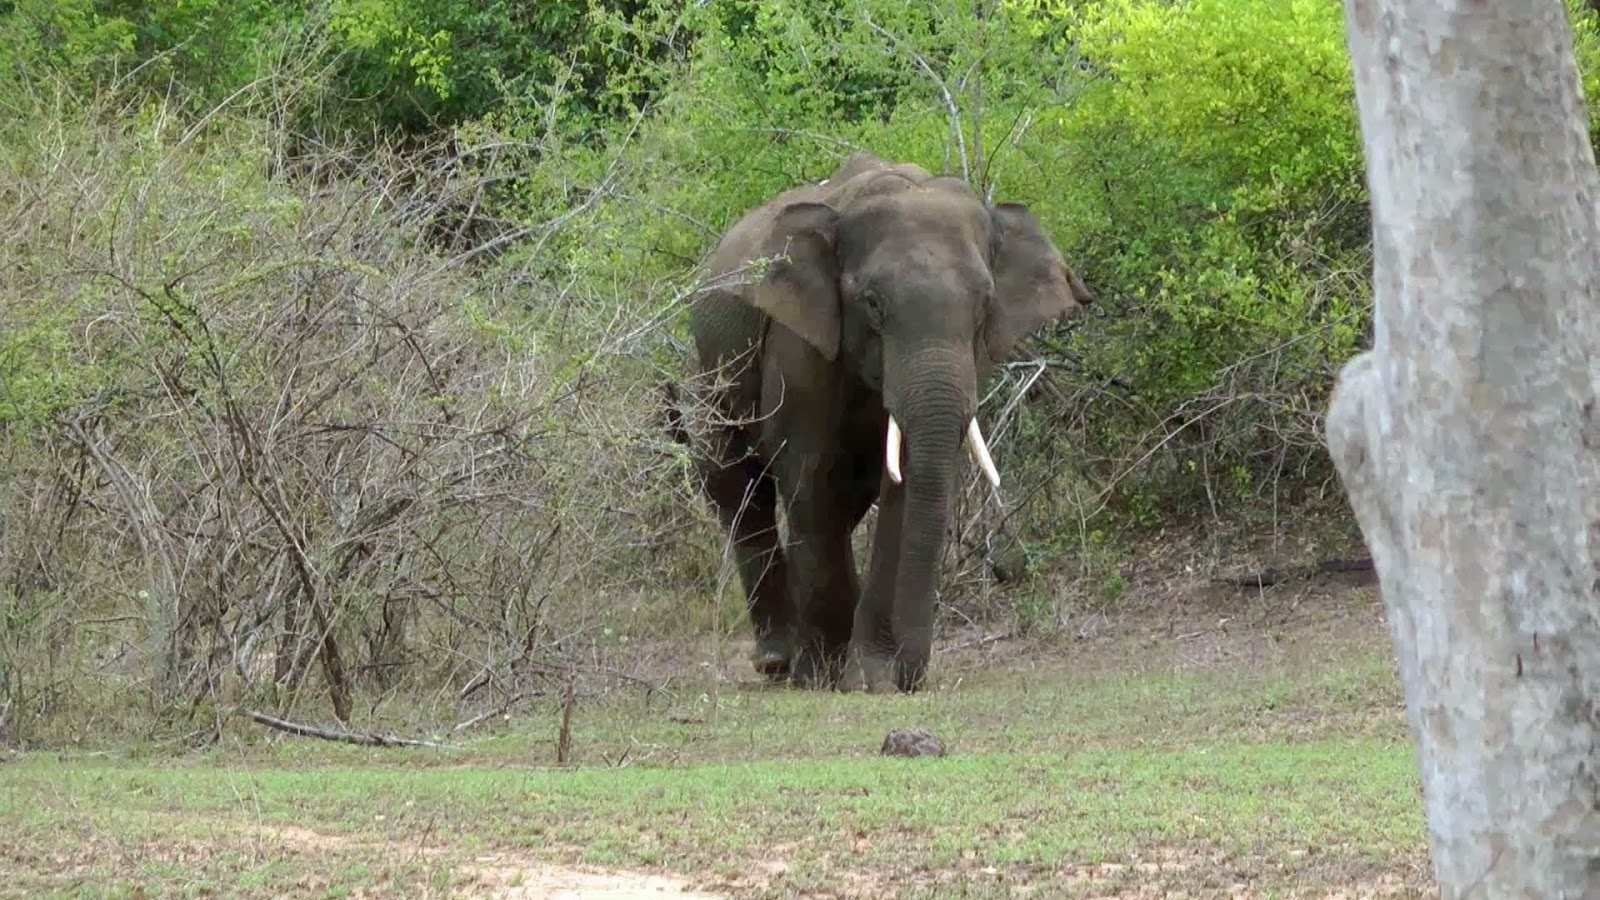 Elephant safari at Tholpetty Wildlife Sanctuary